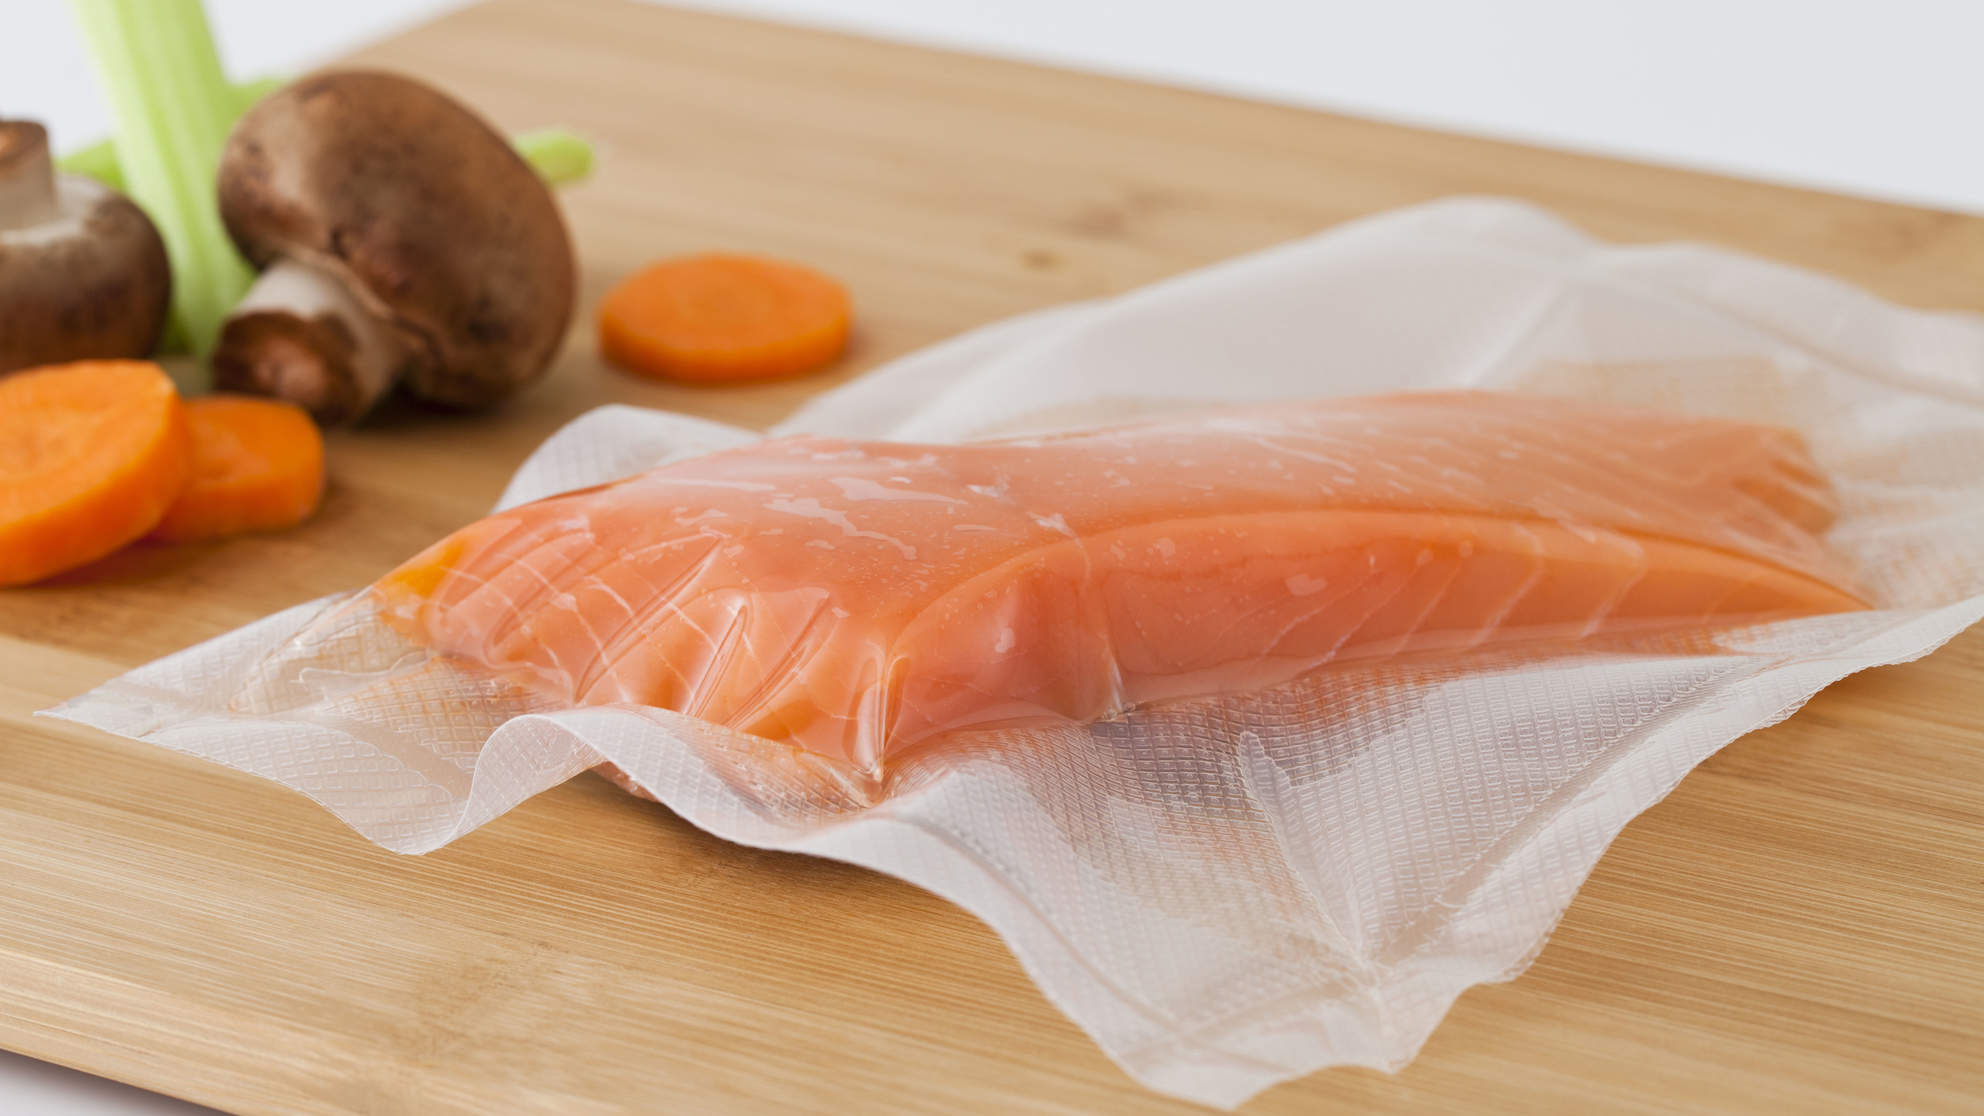 Why You Should Never Thaw Frozen Fish in Its Vacuum-Sealed Packaging